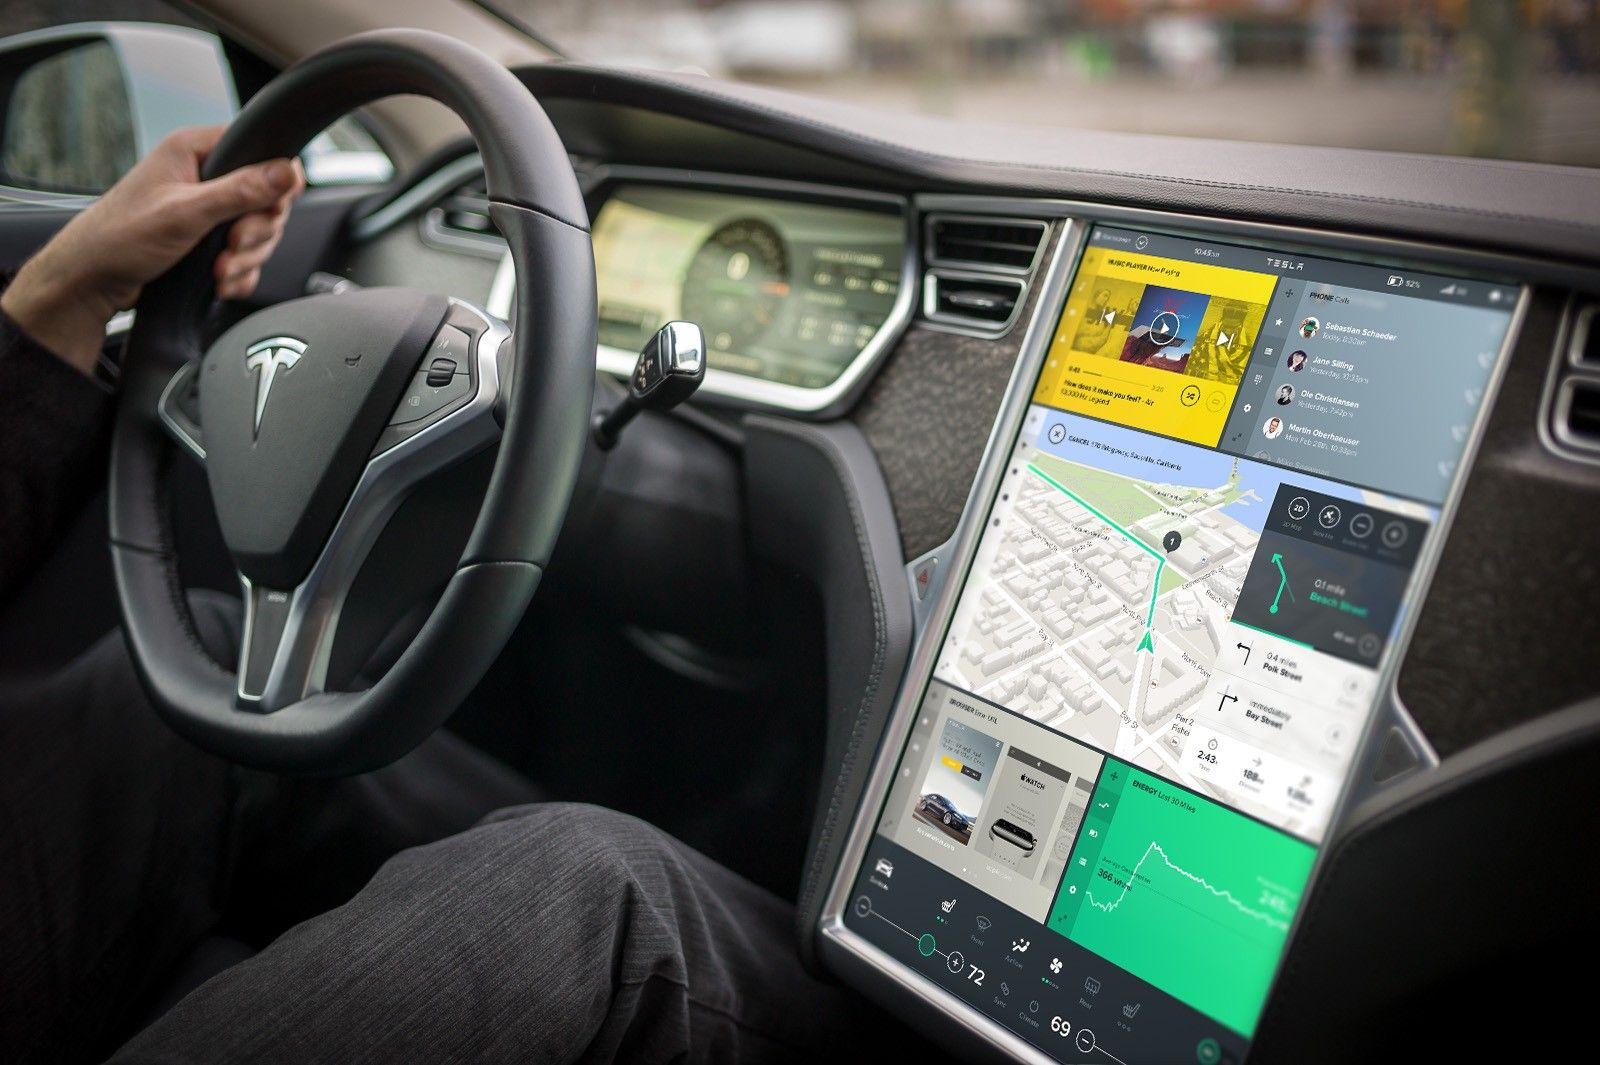 It's time for car infotainment interfaces to arrive in